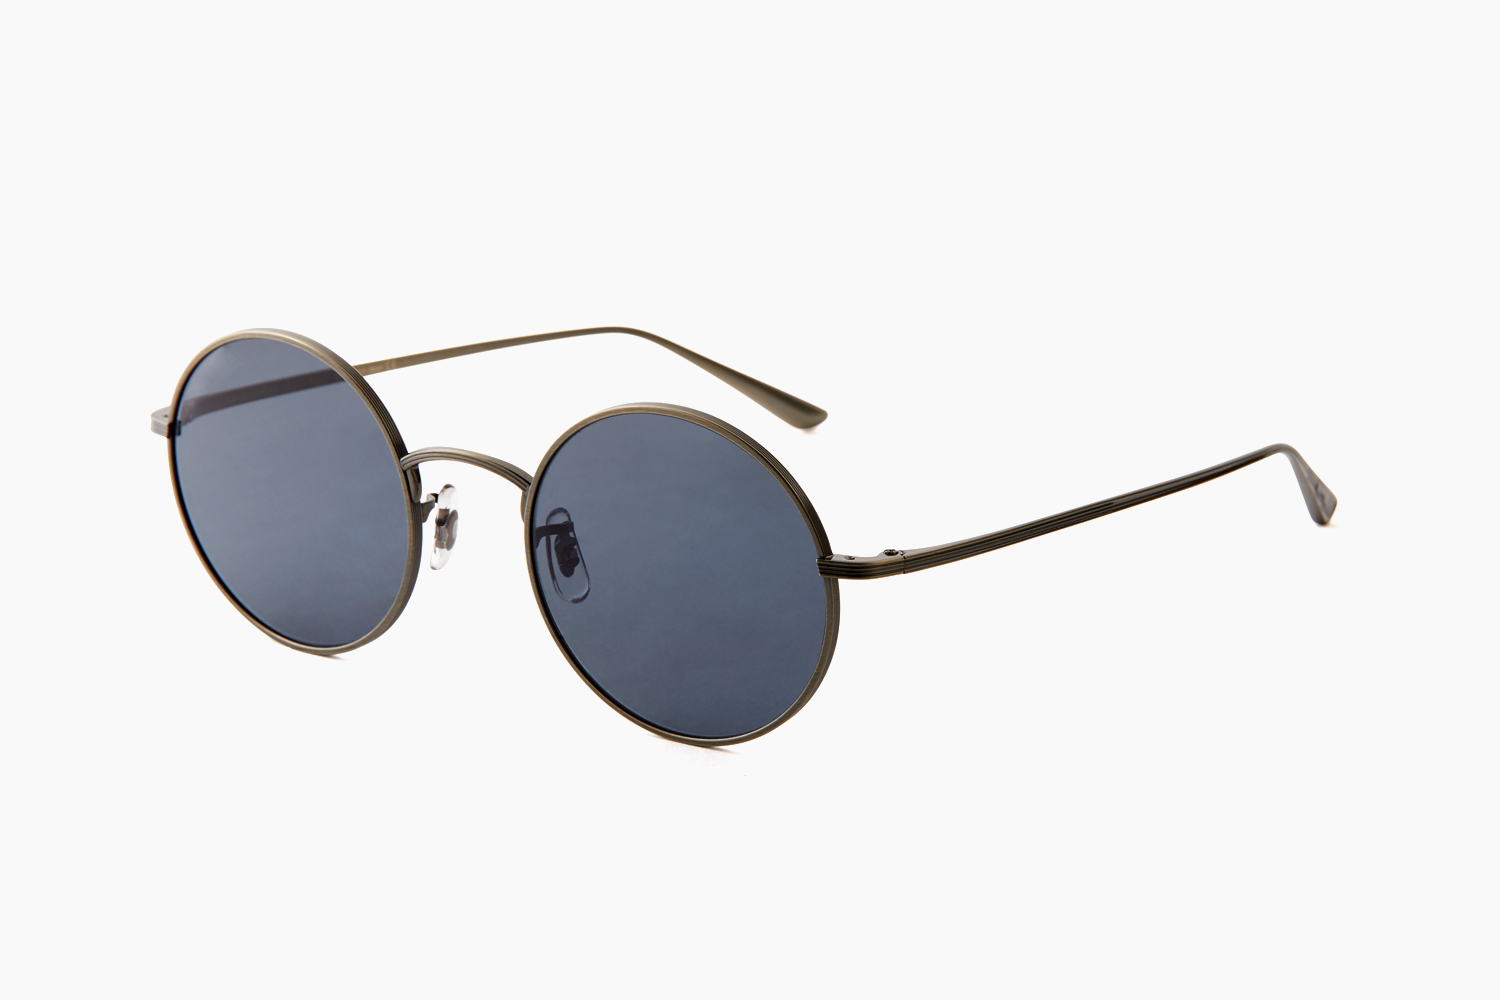 OLIVER PEOPLES THE ROW|After Midnight - Gunmetal|SUNGLASSES COLLECTION - 21SS